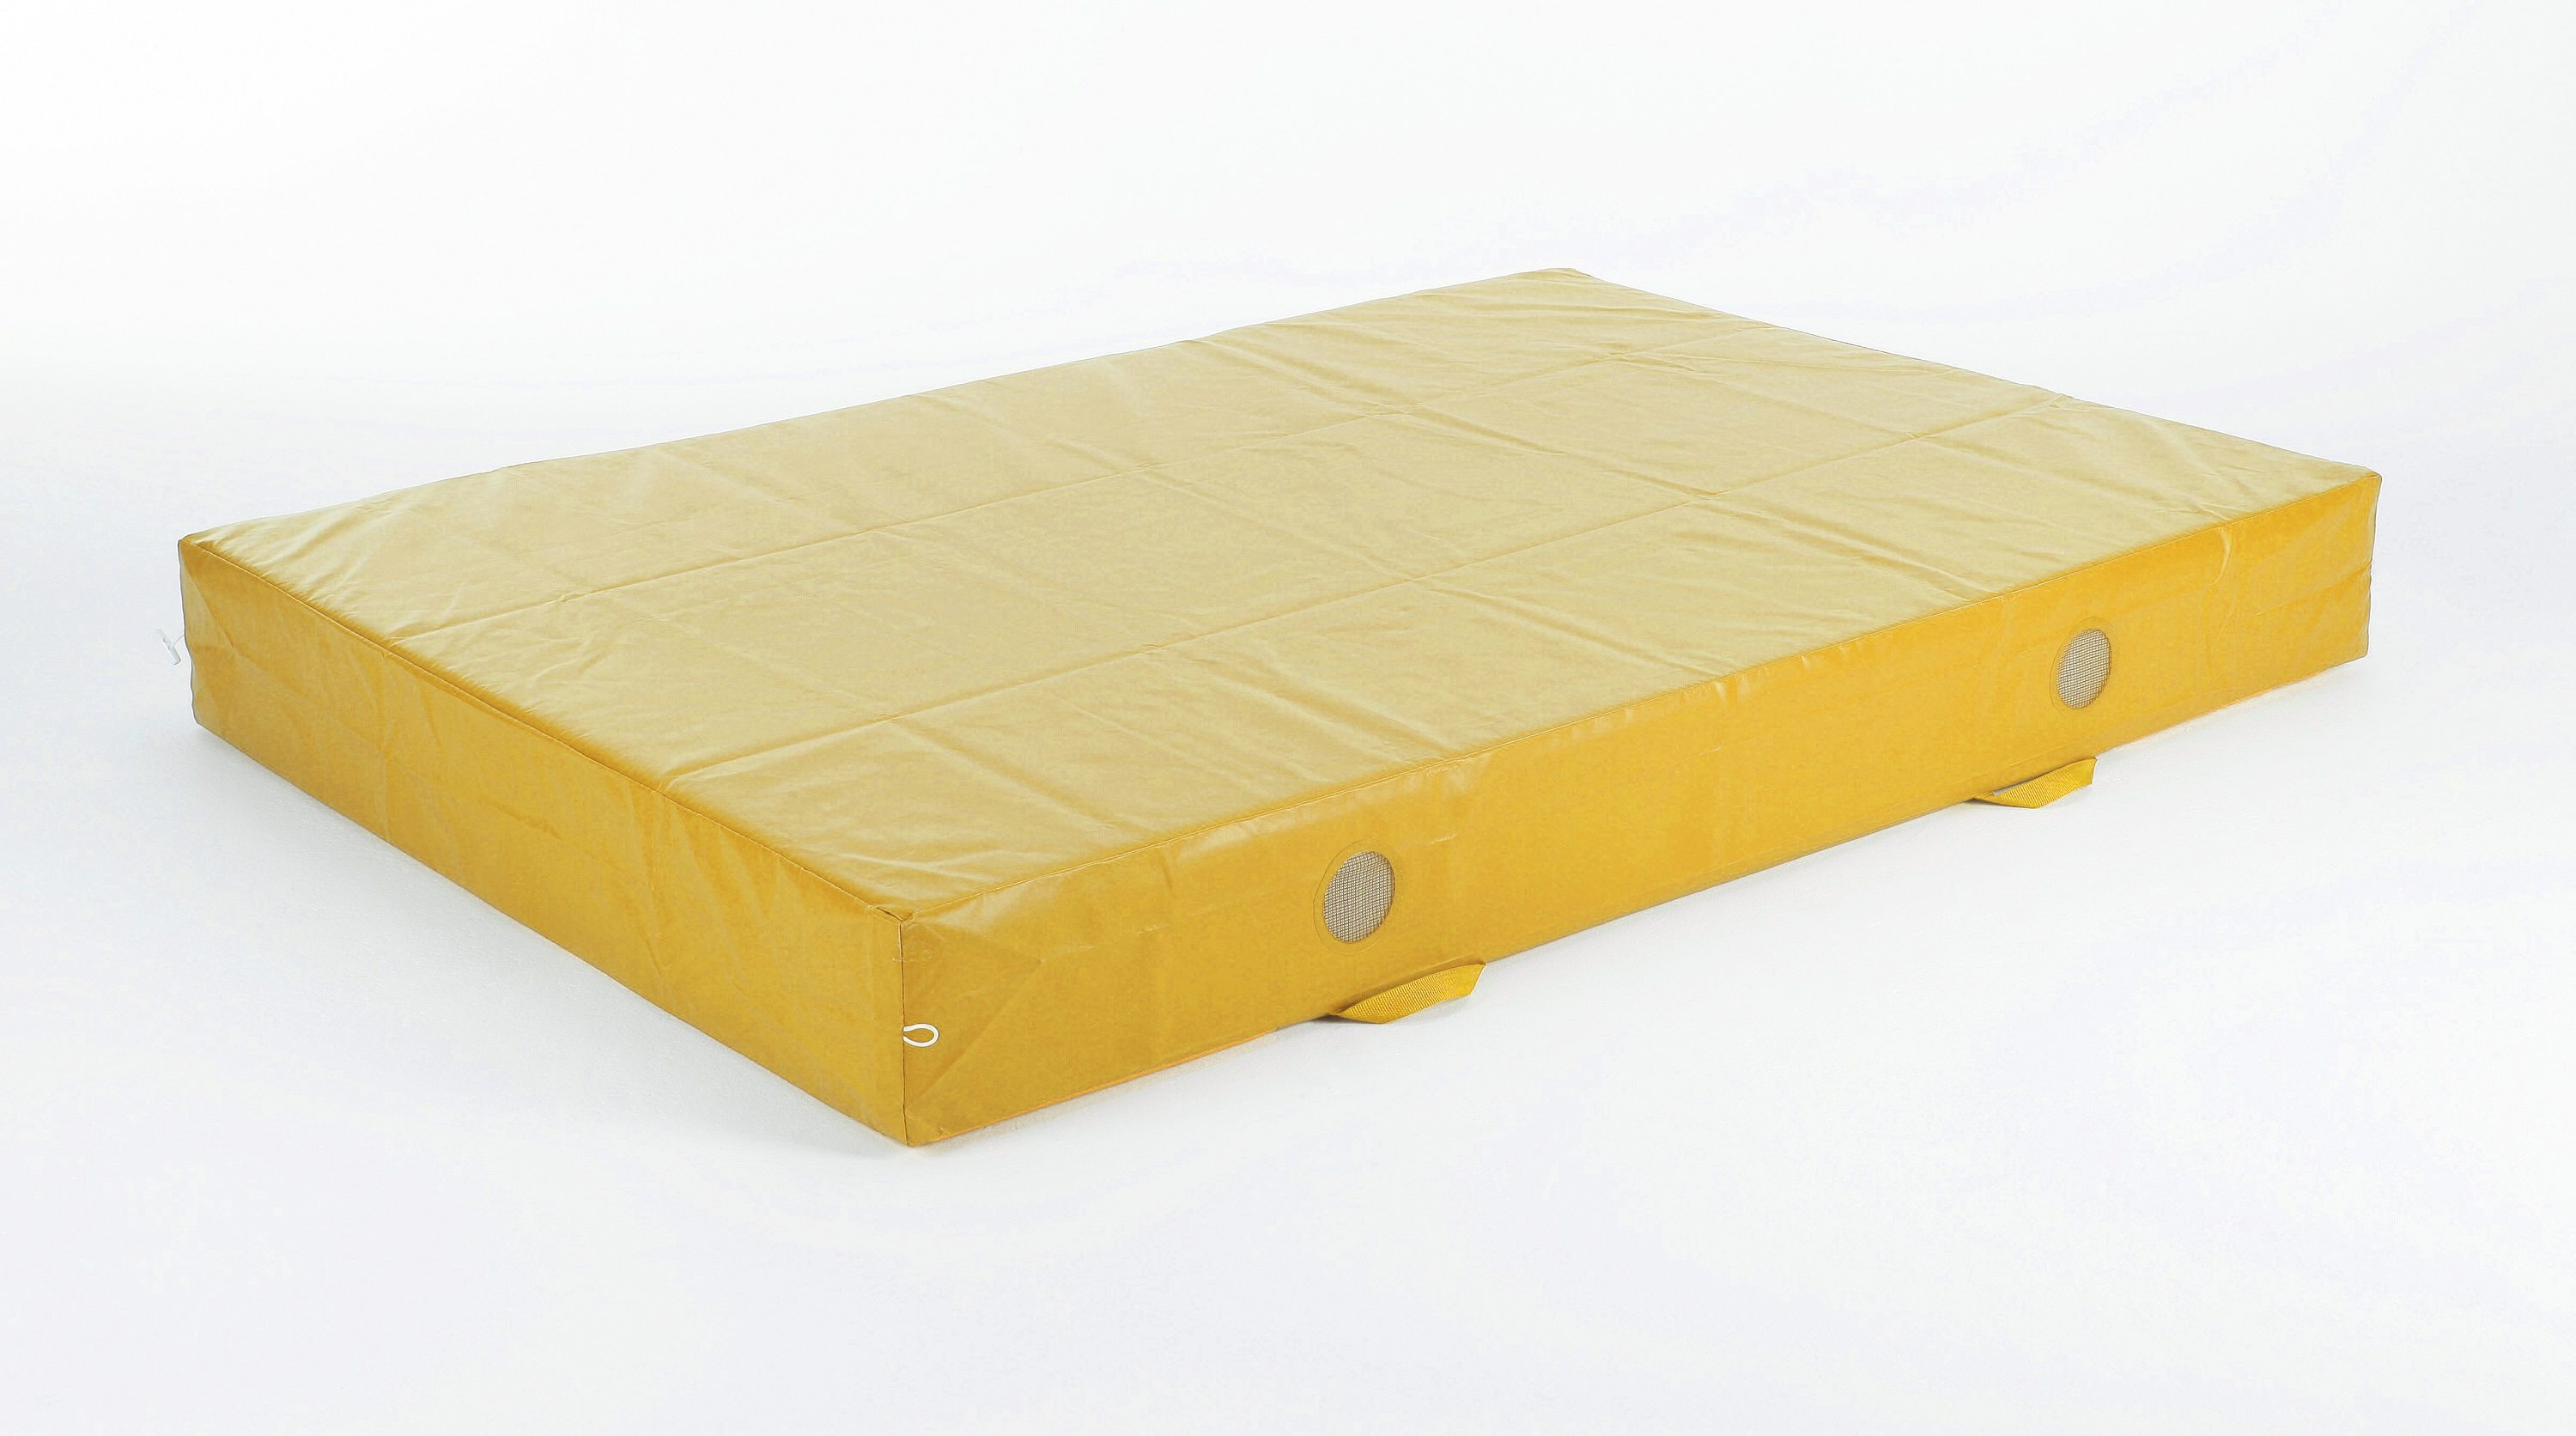 Promat Crash Mats Buy Gymnastics Crash Mats Online